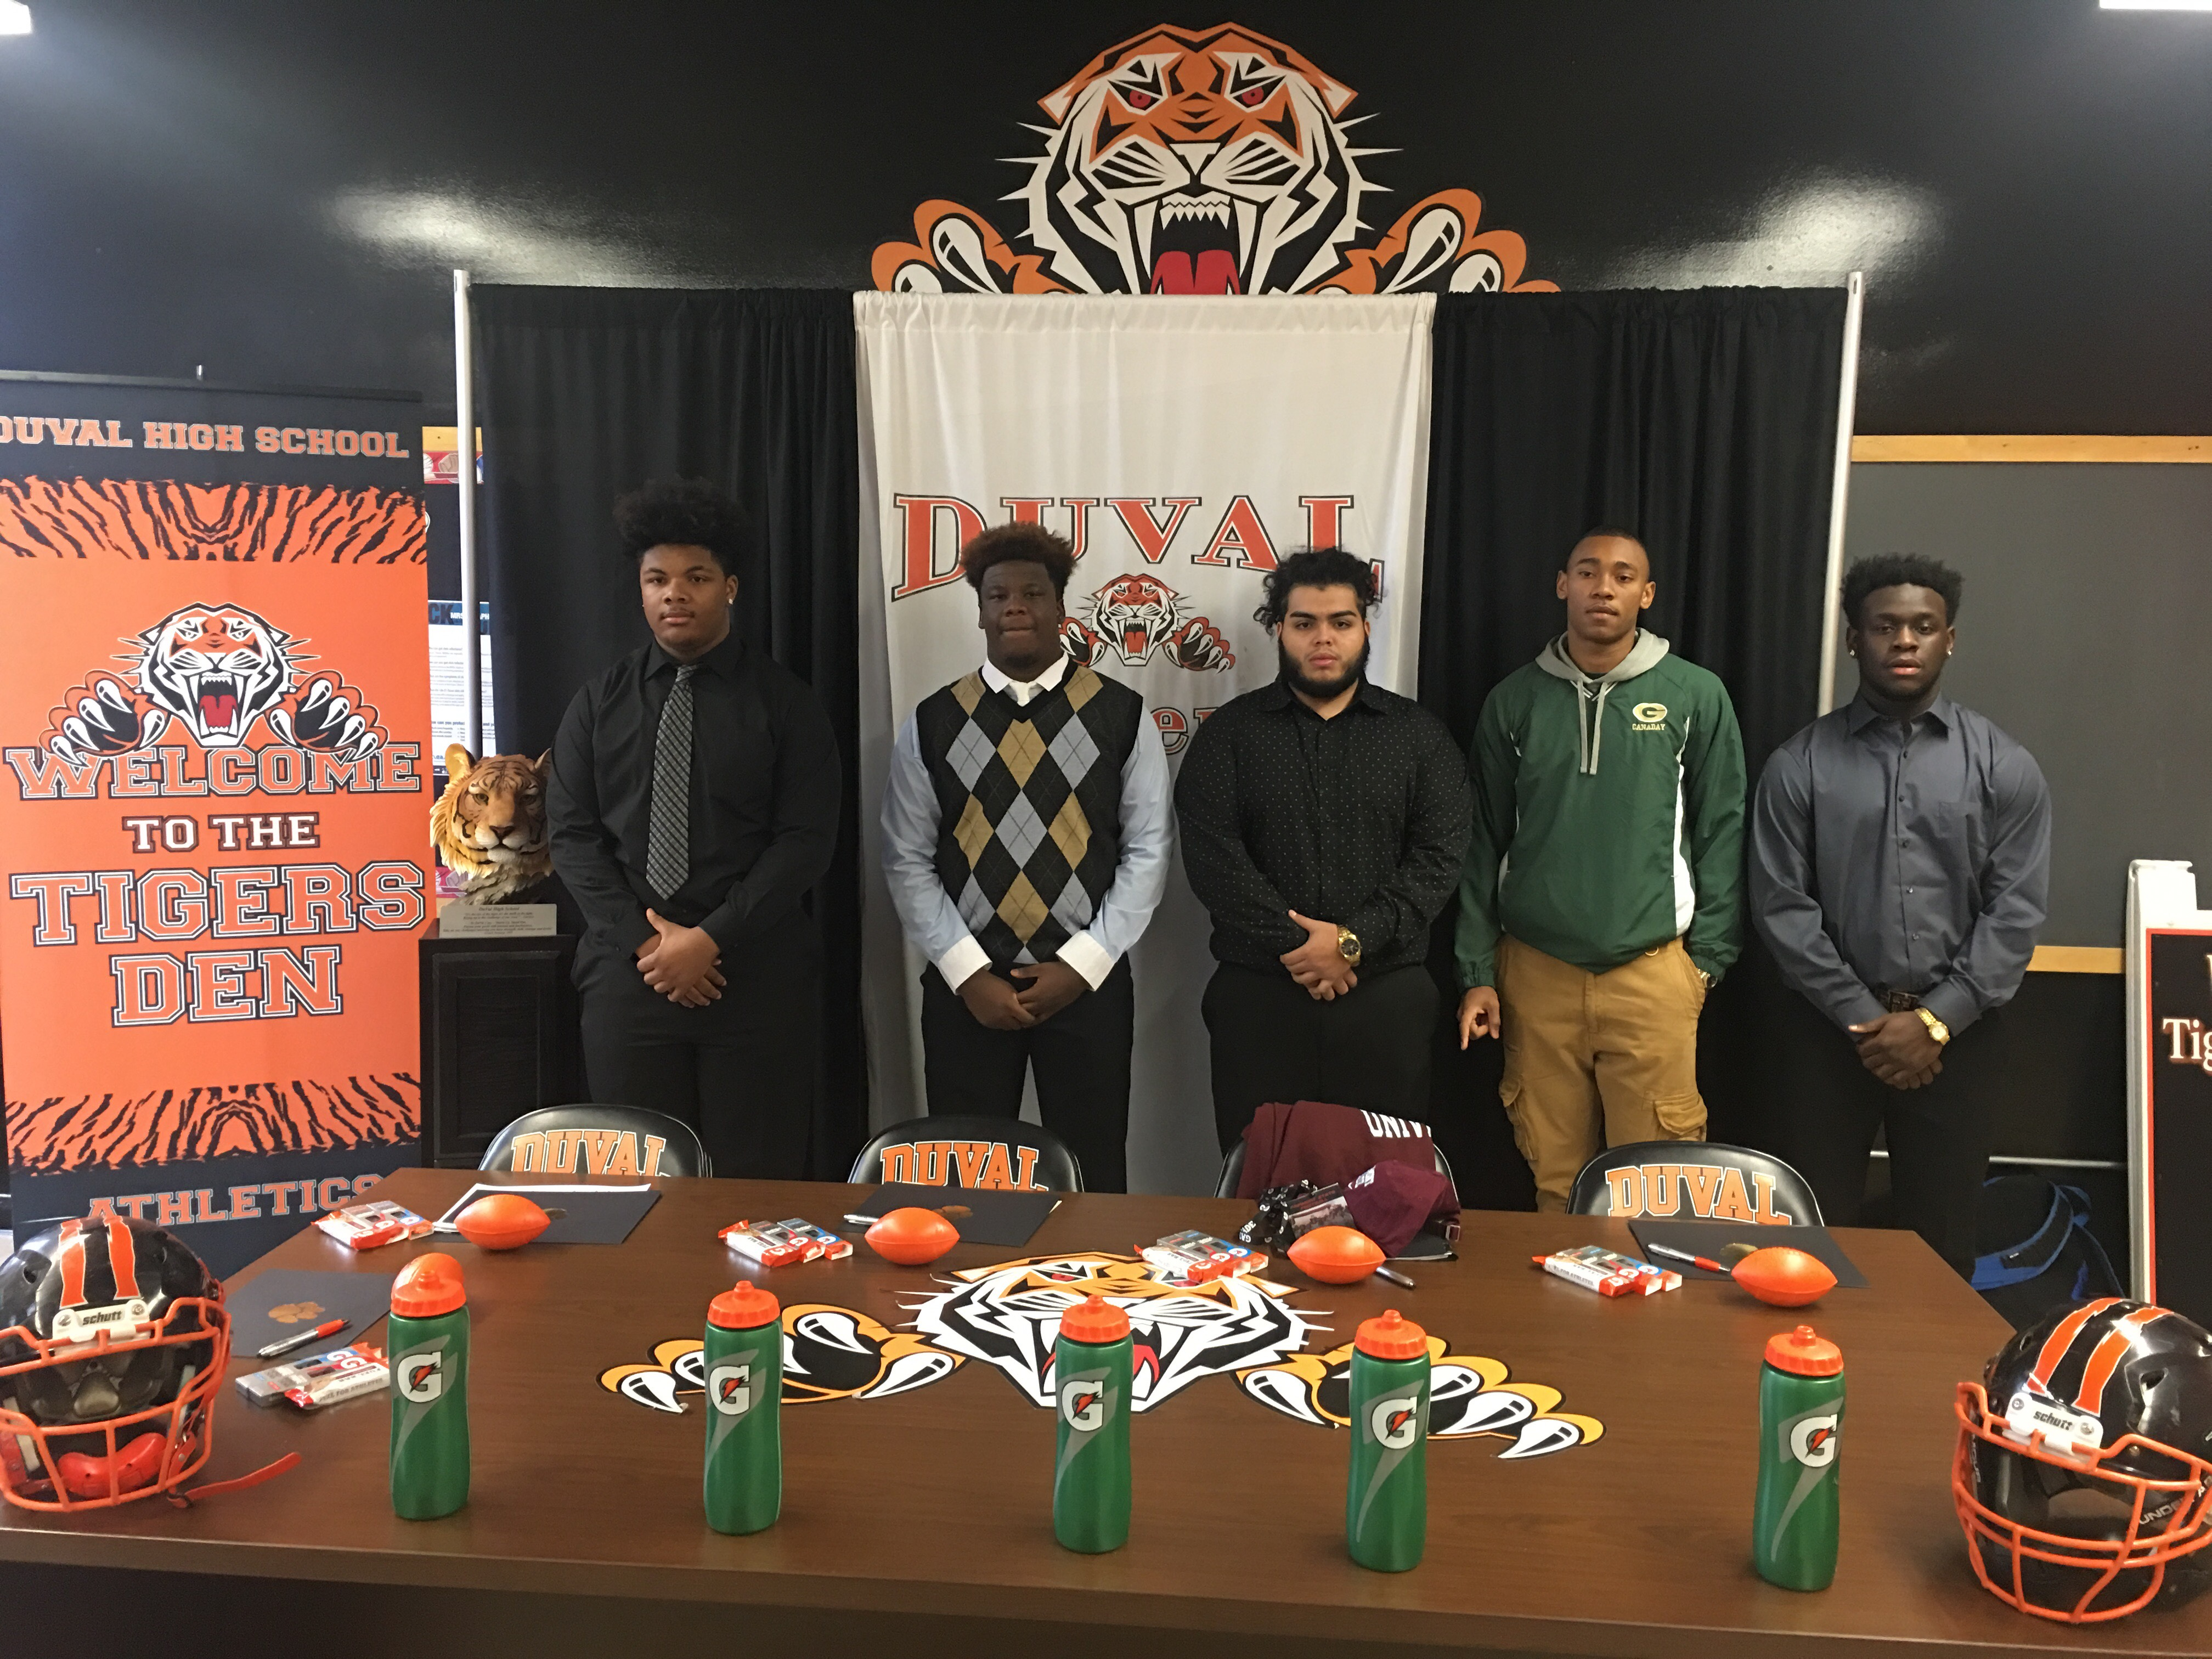 NATIONAL SIGNING DAY 2018!!!